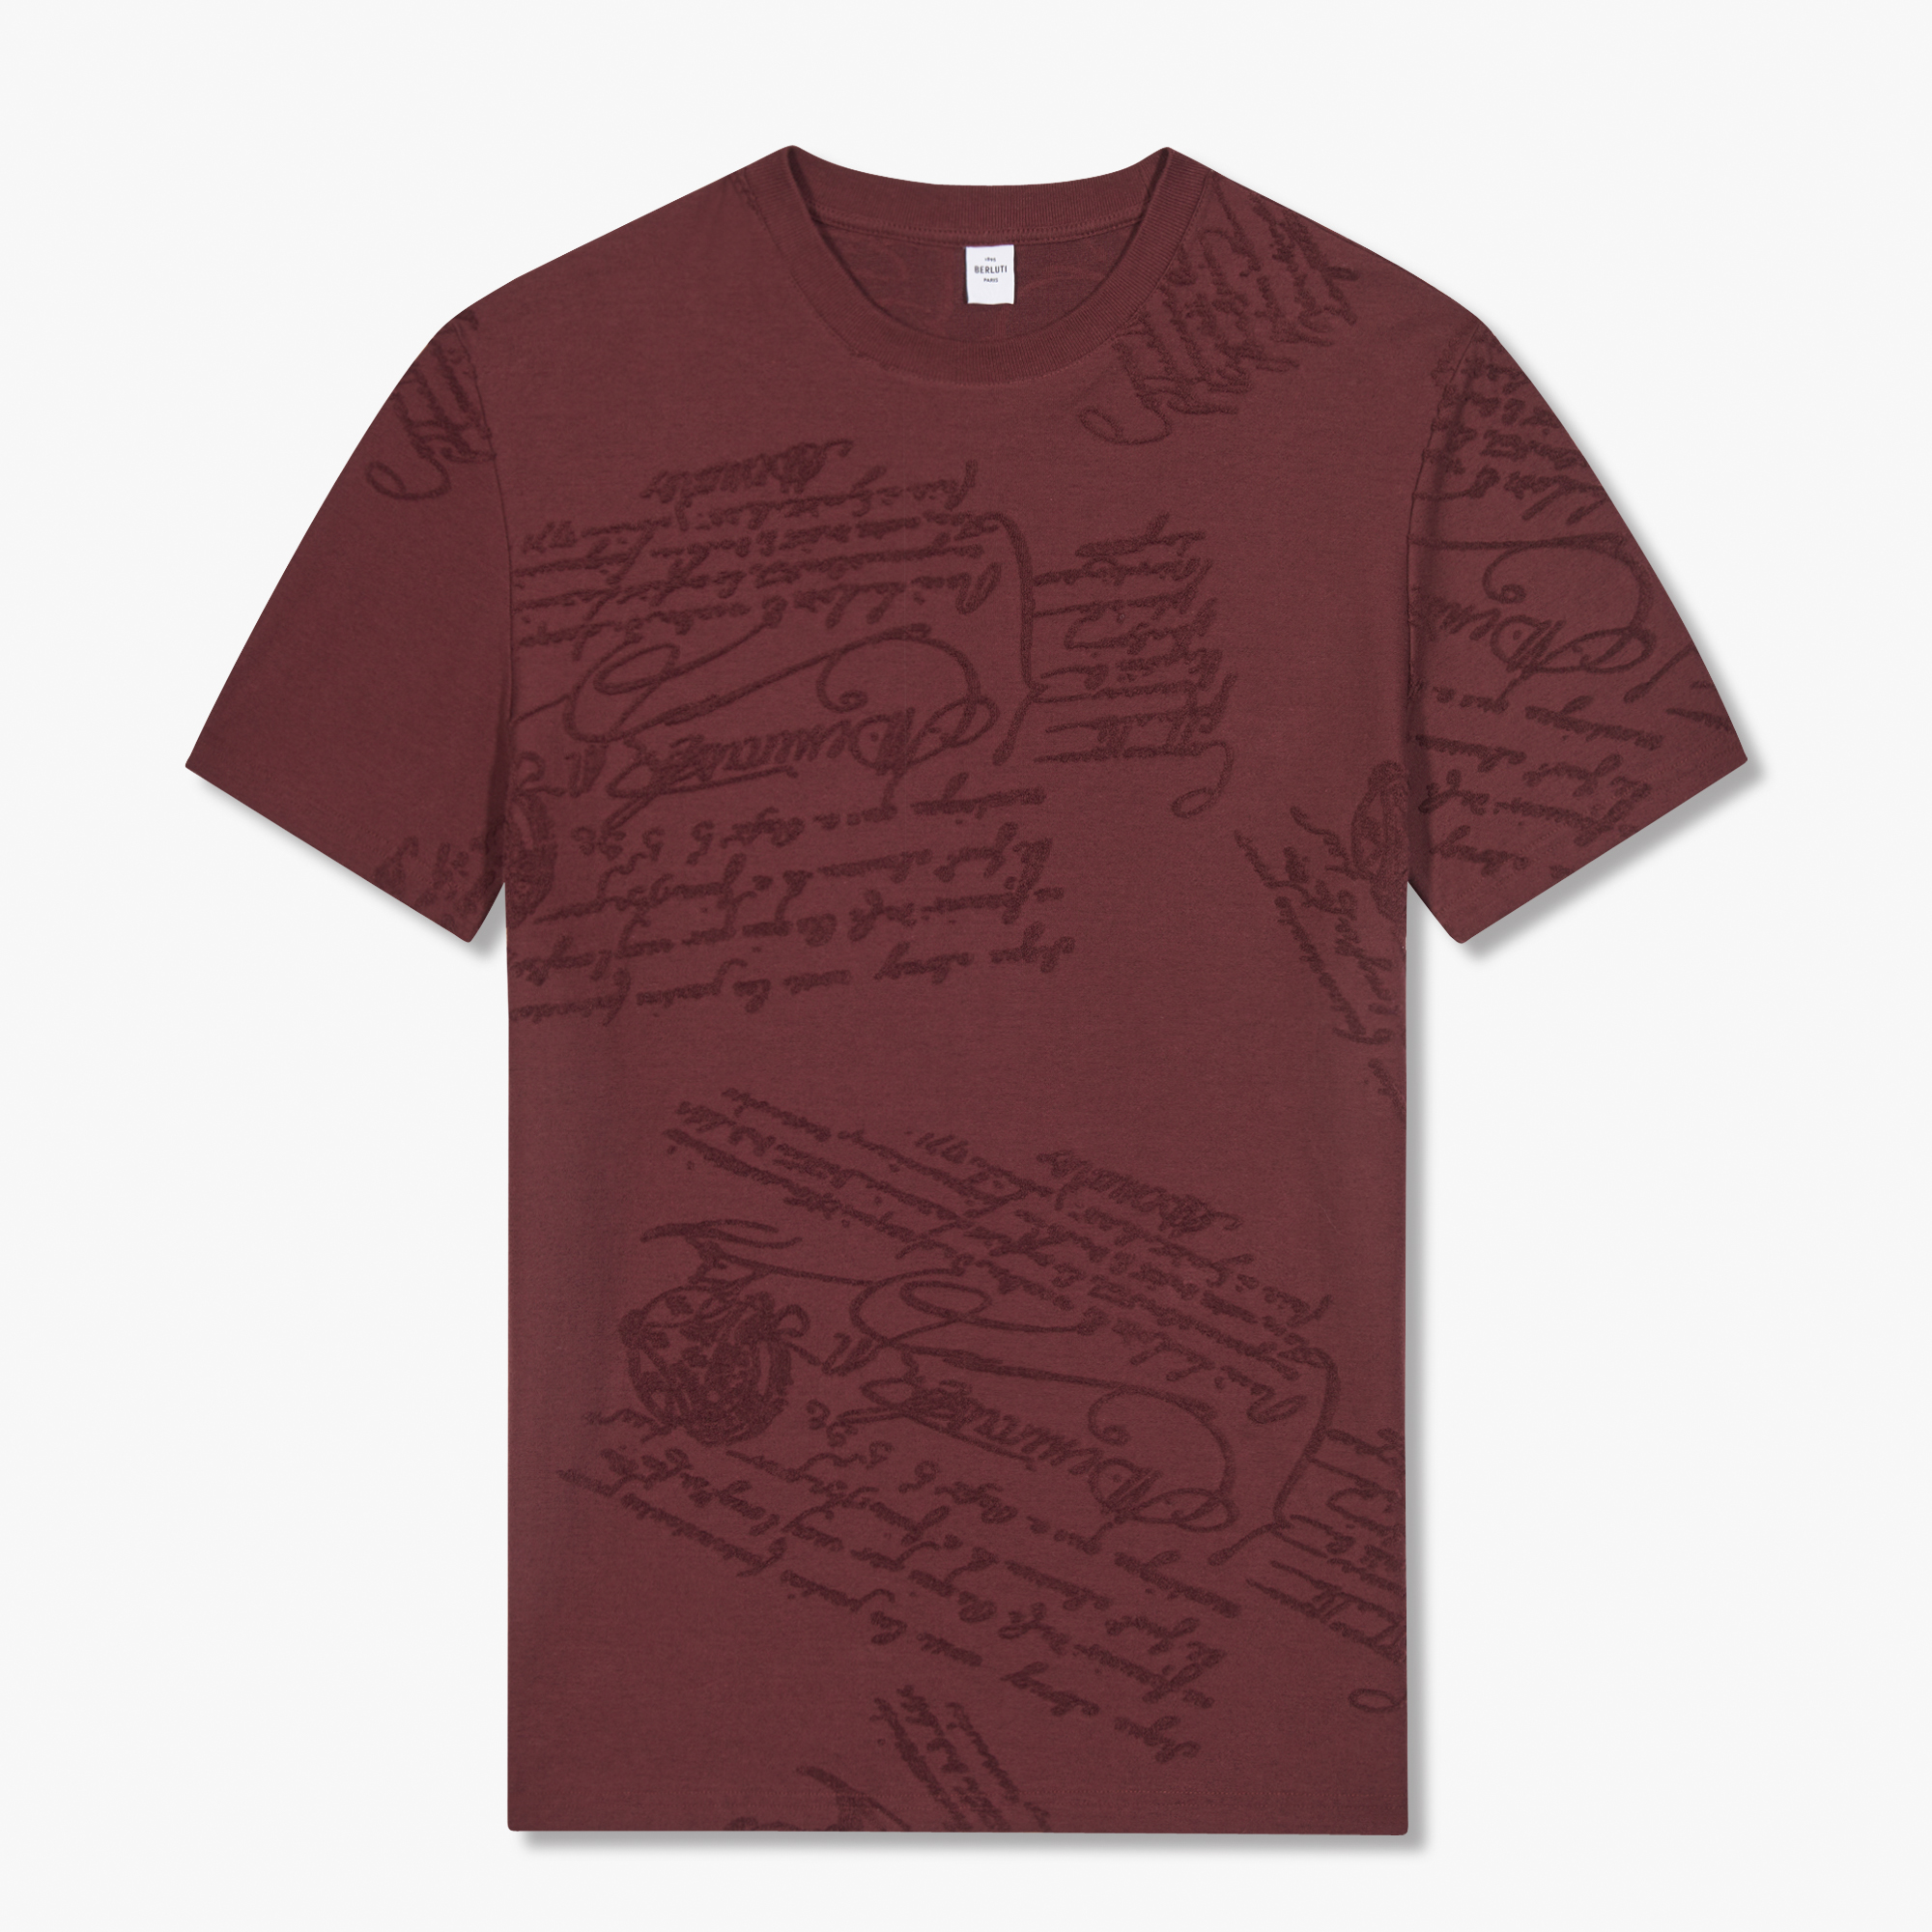 Terry Scritto T-shirt, BLACK CHERRY, hi-res